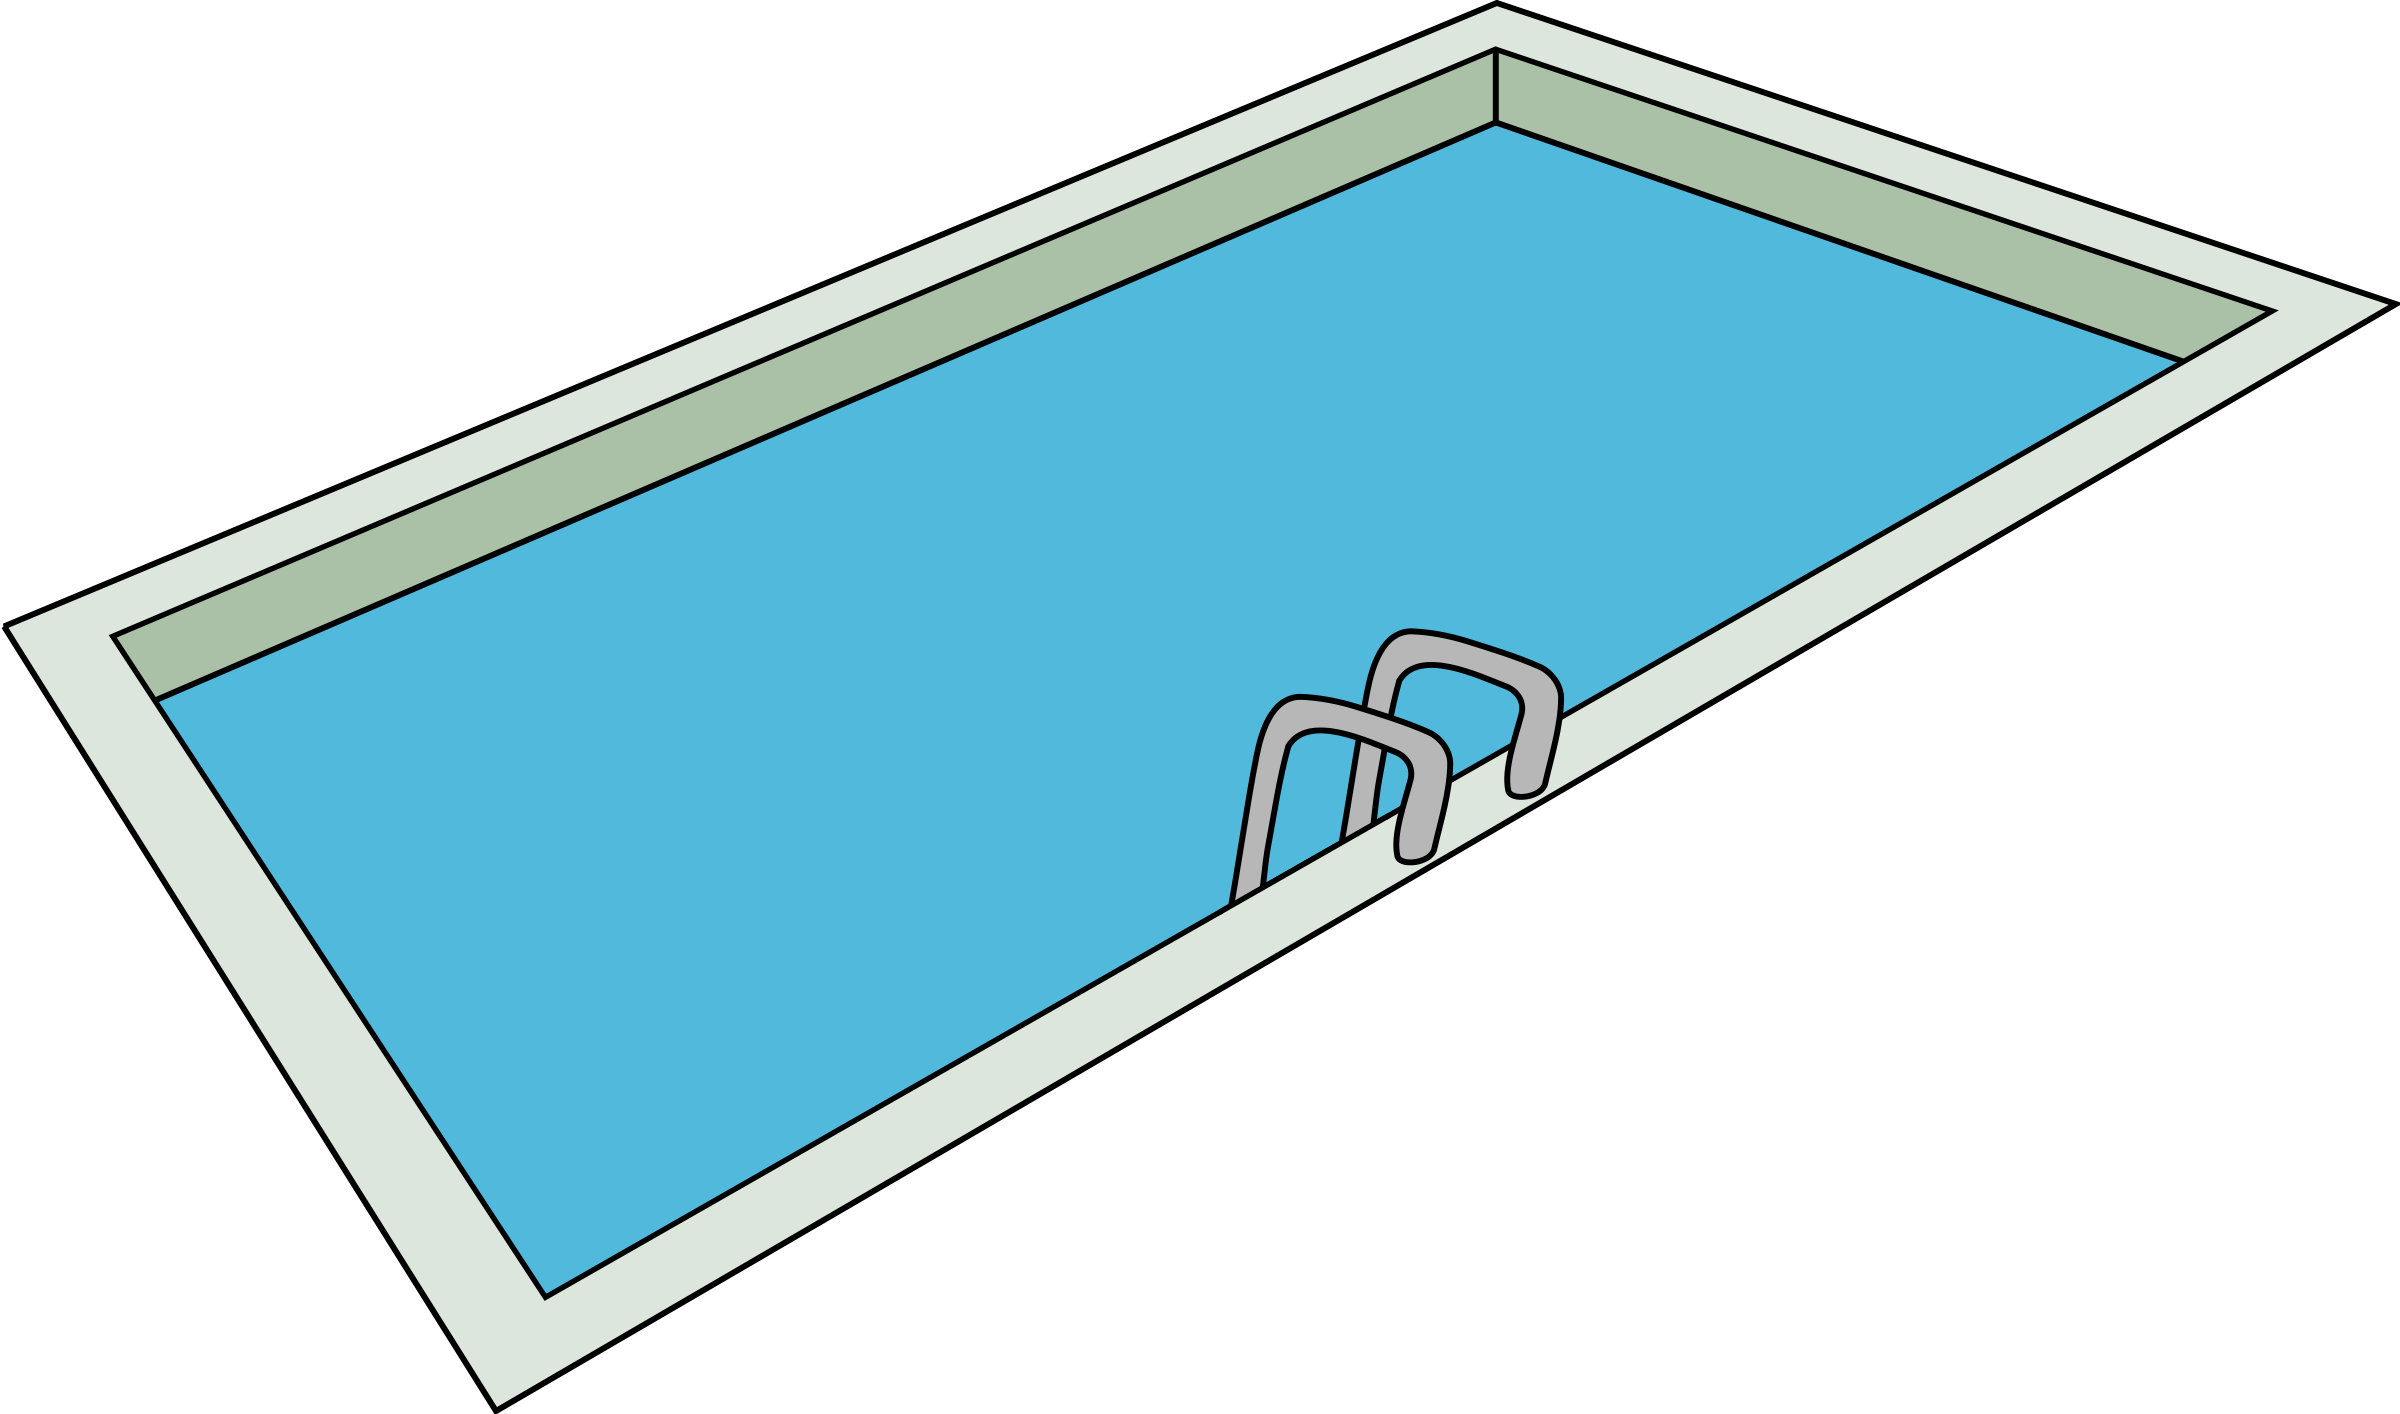 Clipart Of Swimming Pool.